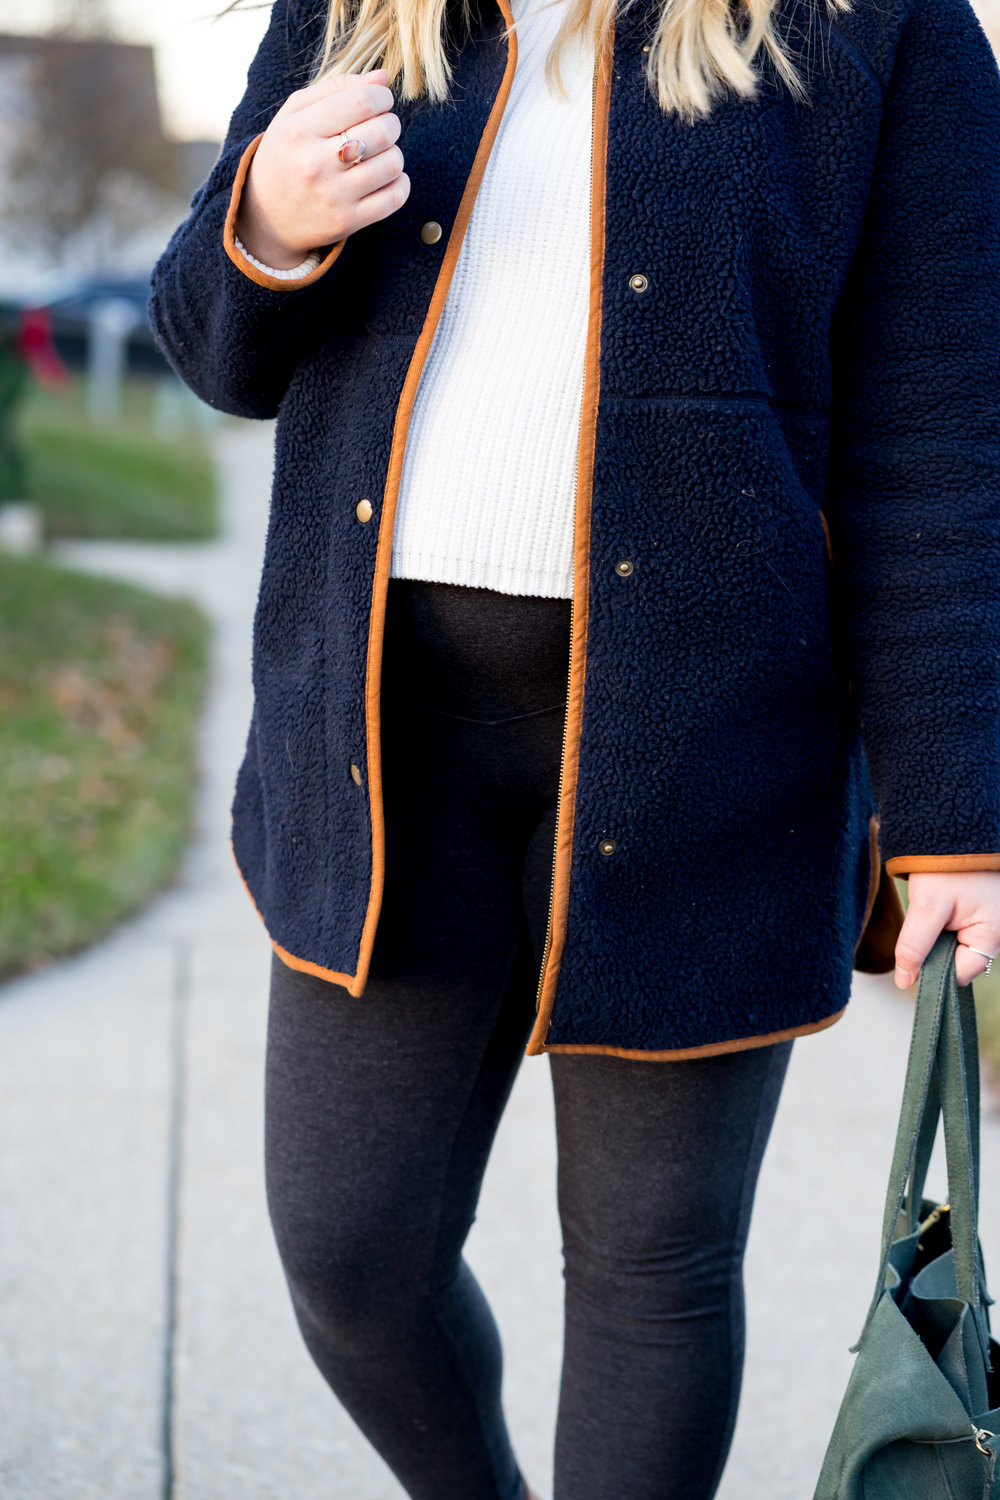 Maggie a la Mode - Teddy and Sherpa Coats Under $100 Old Navy Long Sherpa Faux-Suede Lined Coat, French Connection Millie Mozart Sweater, Old Navy Maternity Leggings, Madewell Medium Transport Tote, Madewell Asher Boot in Suede and Leather